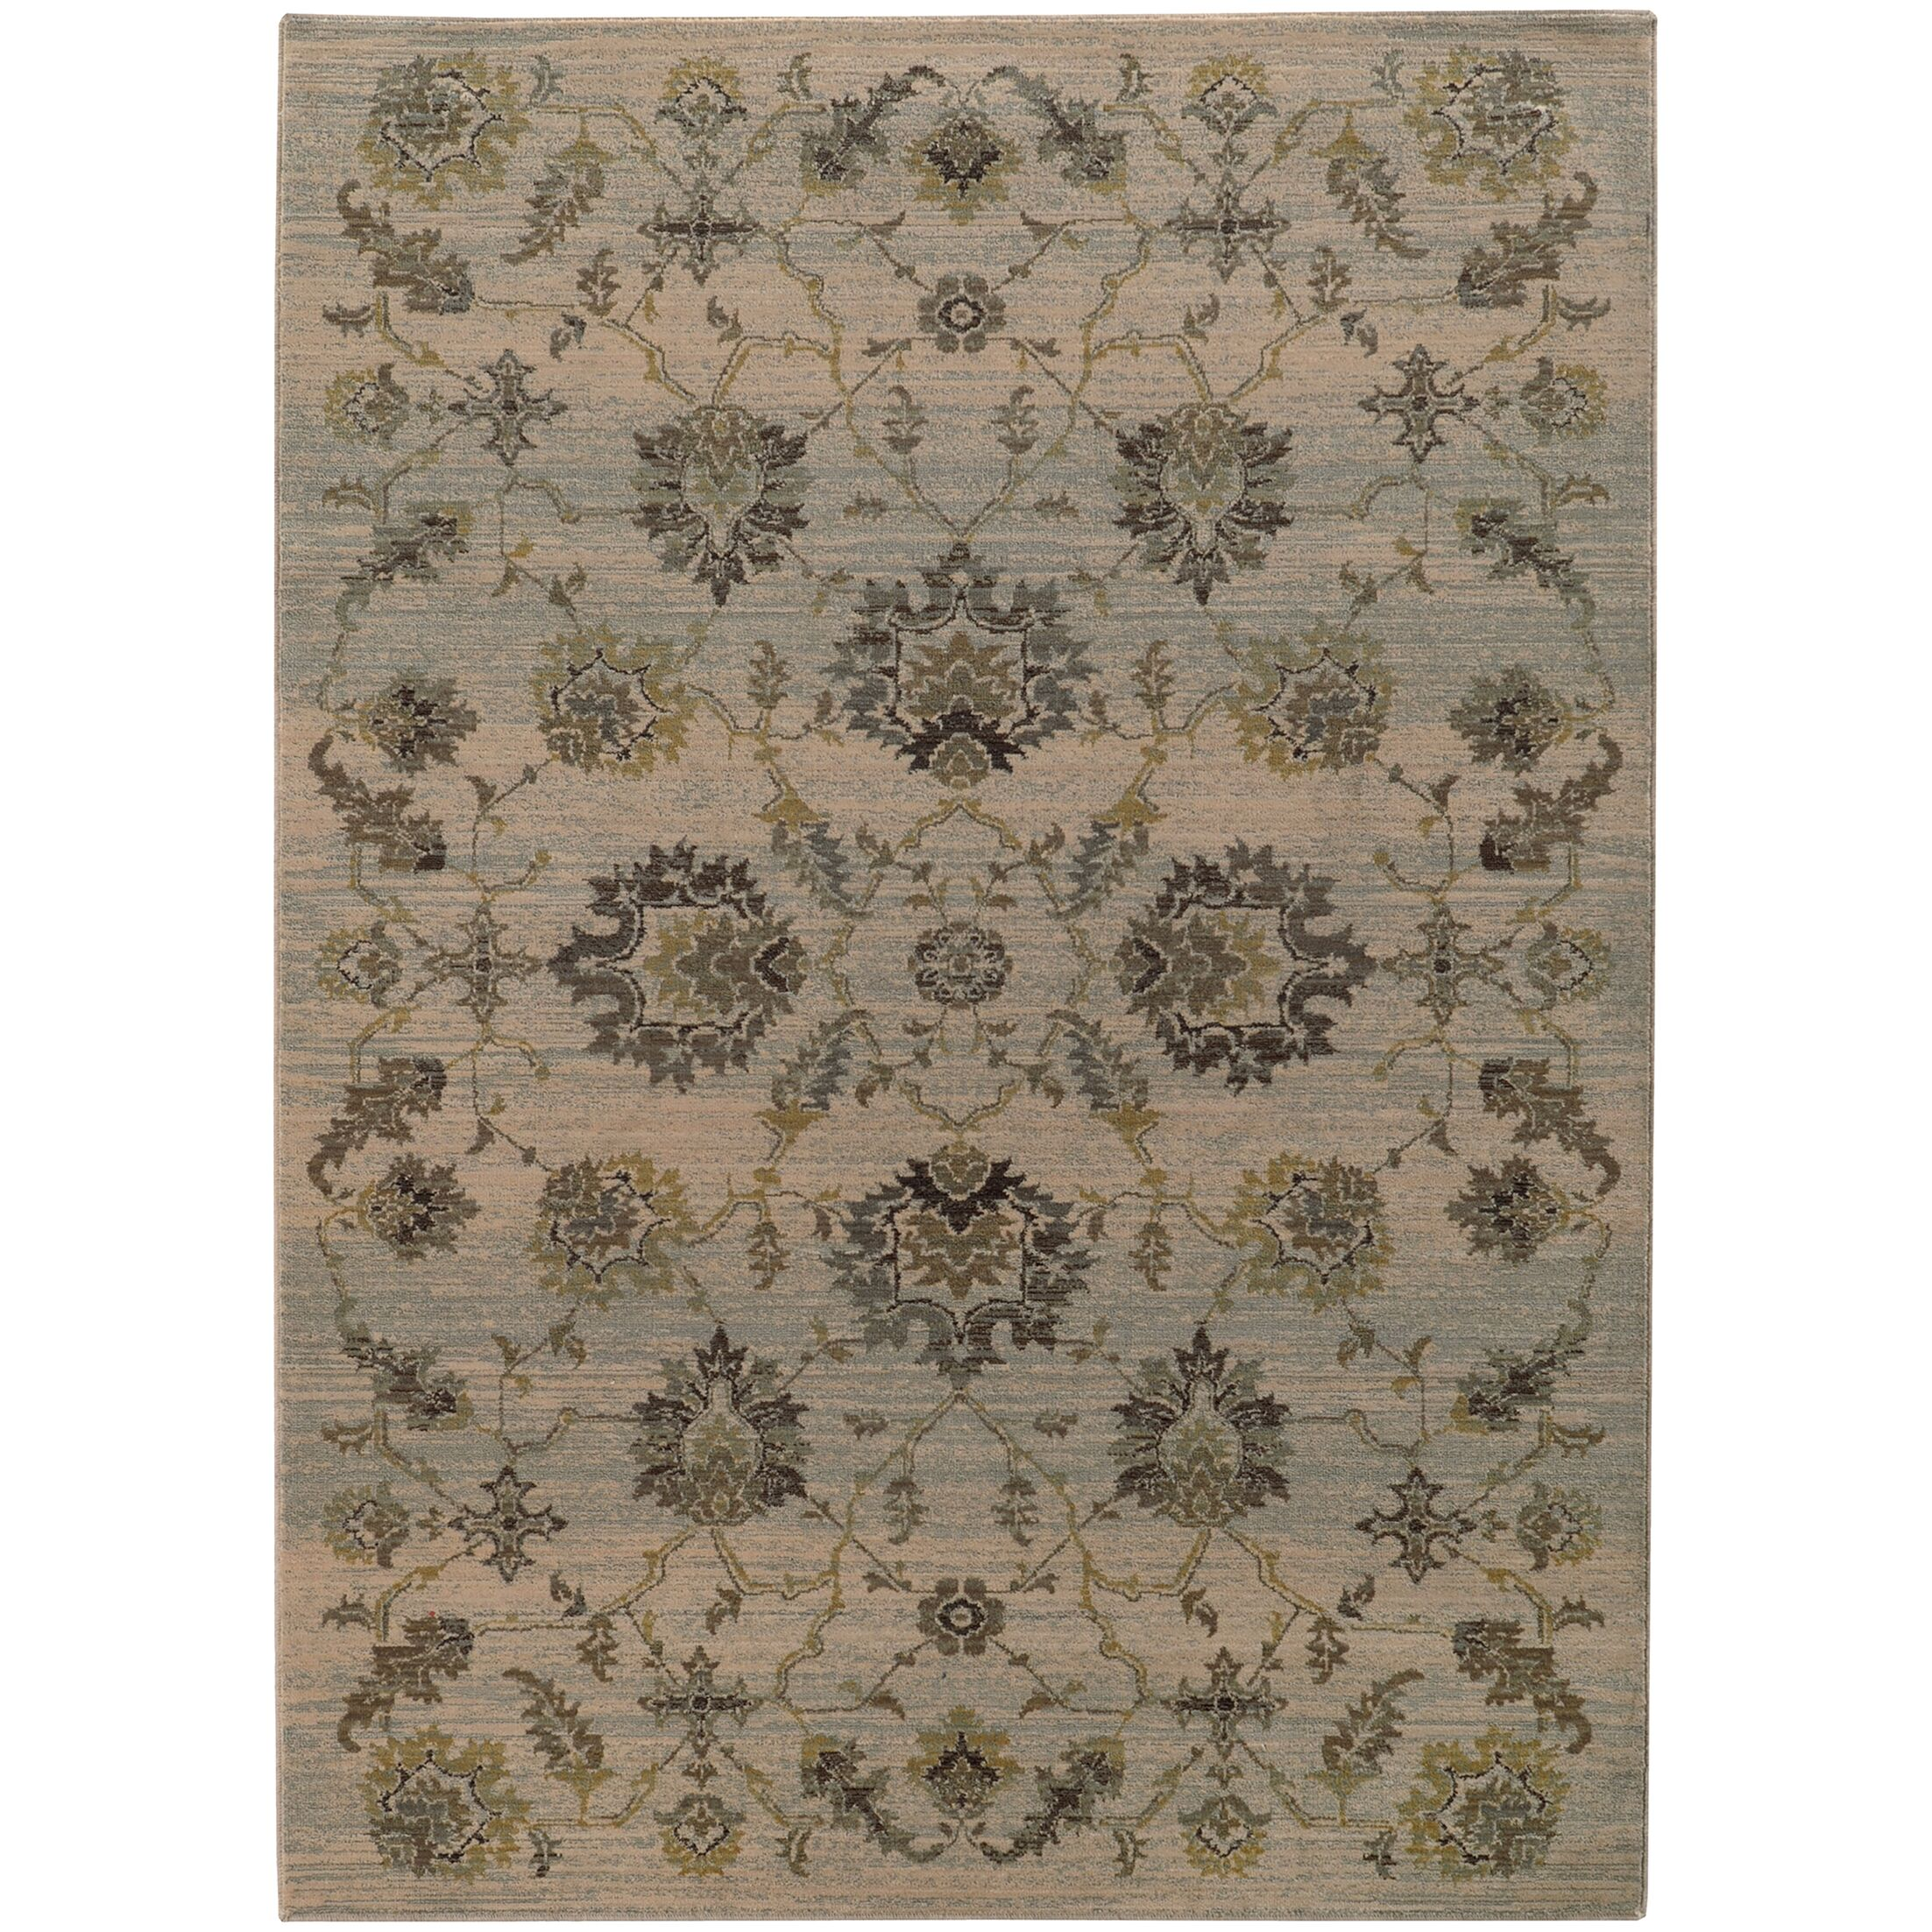 Gast Gray/Green Area Rug Rug Size: Rectangle 9'10